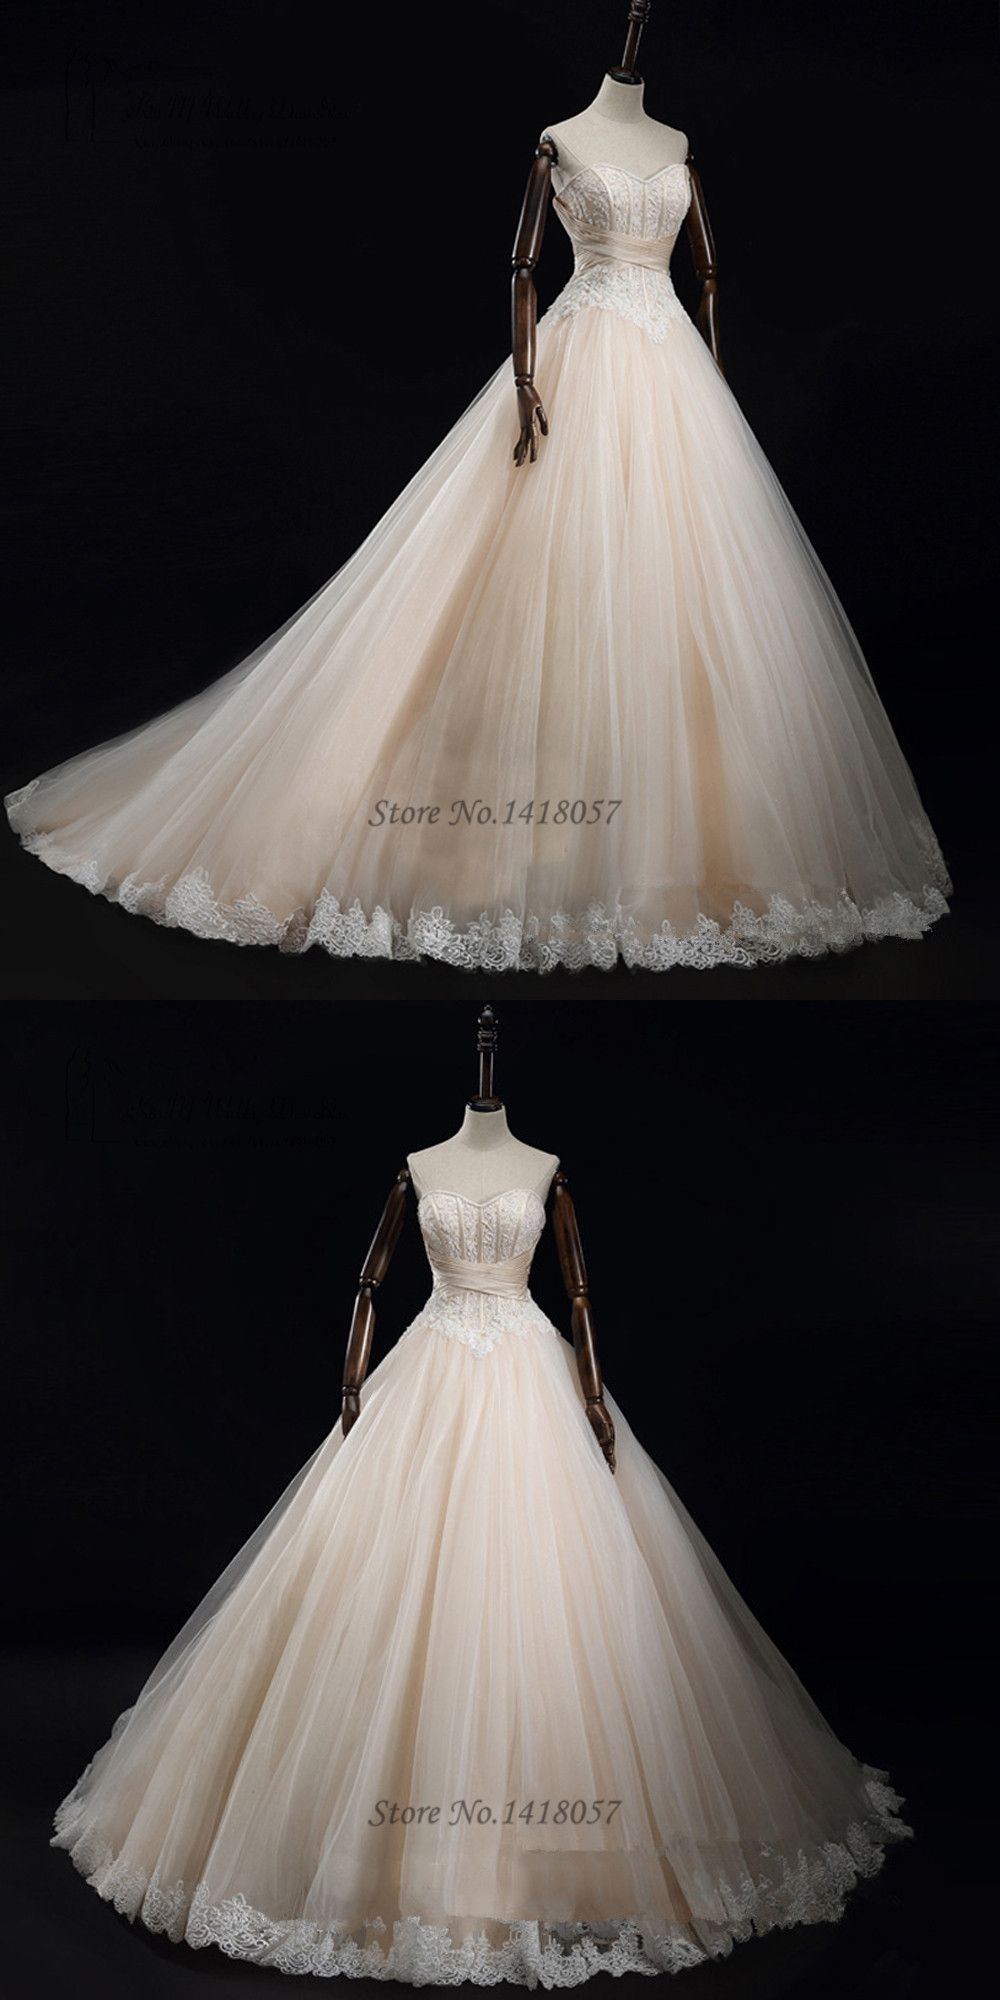 Champagne plus size wedding dresses  Champagne Wedding Dress Elegant Ball Gown Bride Dresses  Vestido